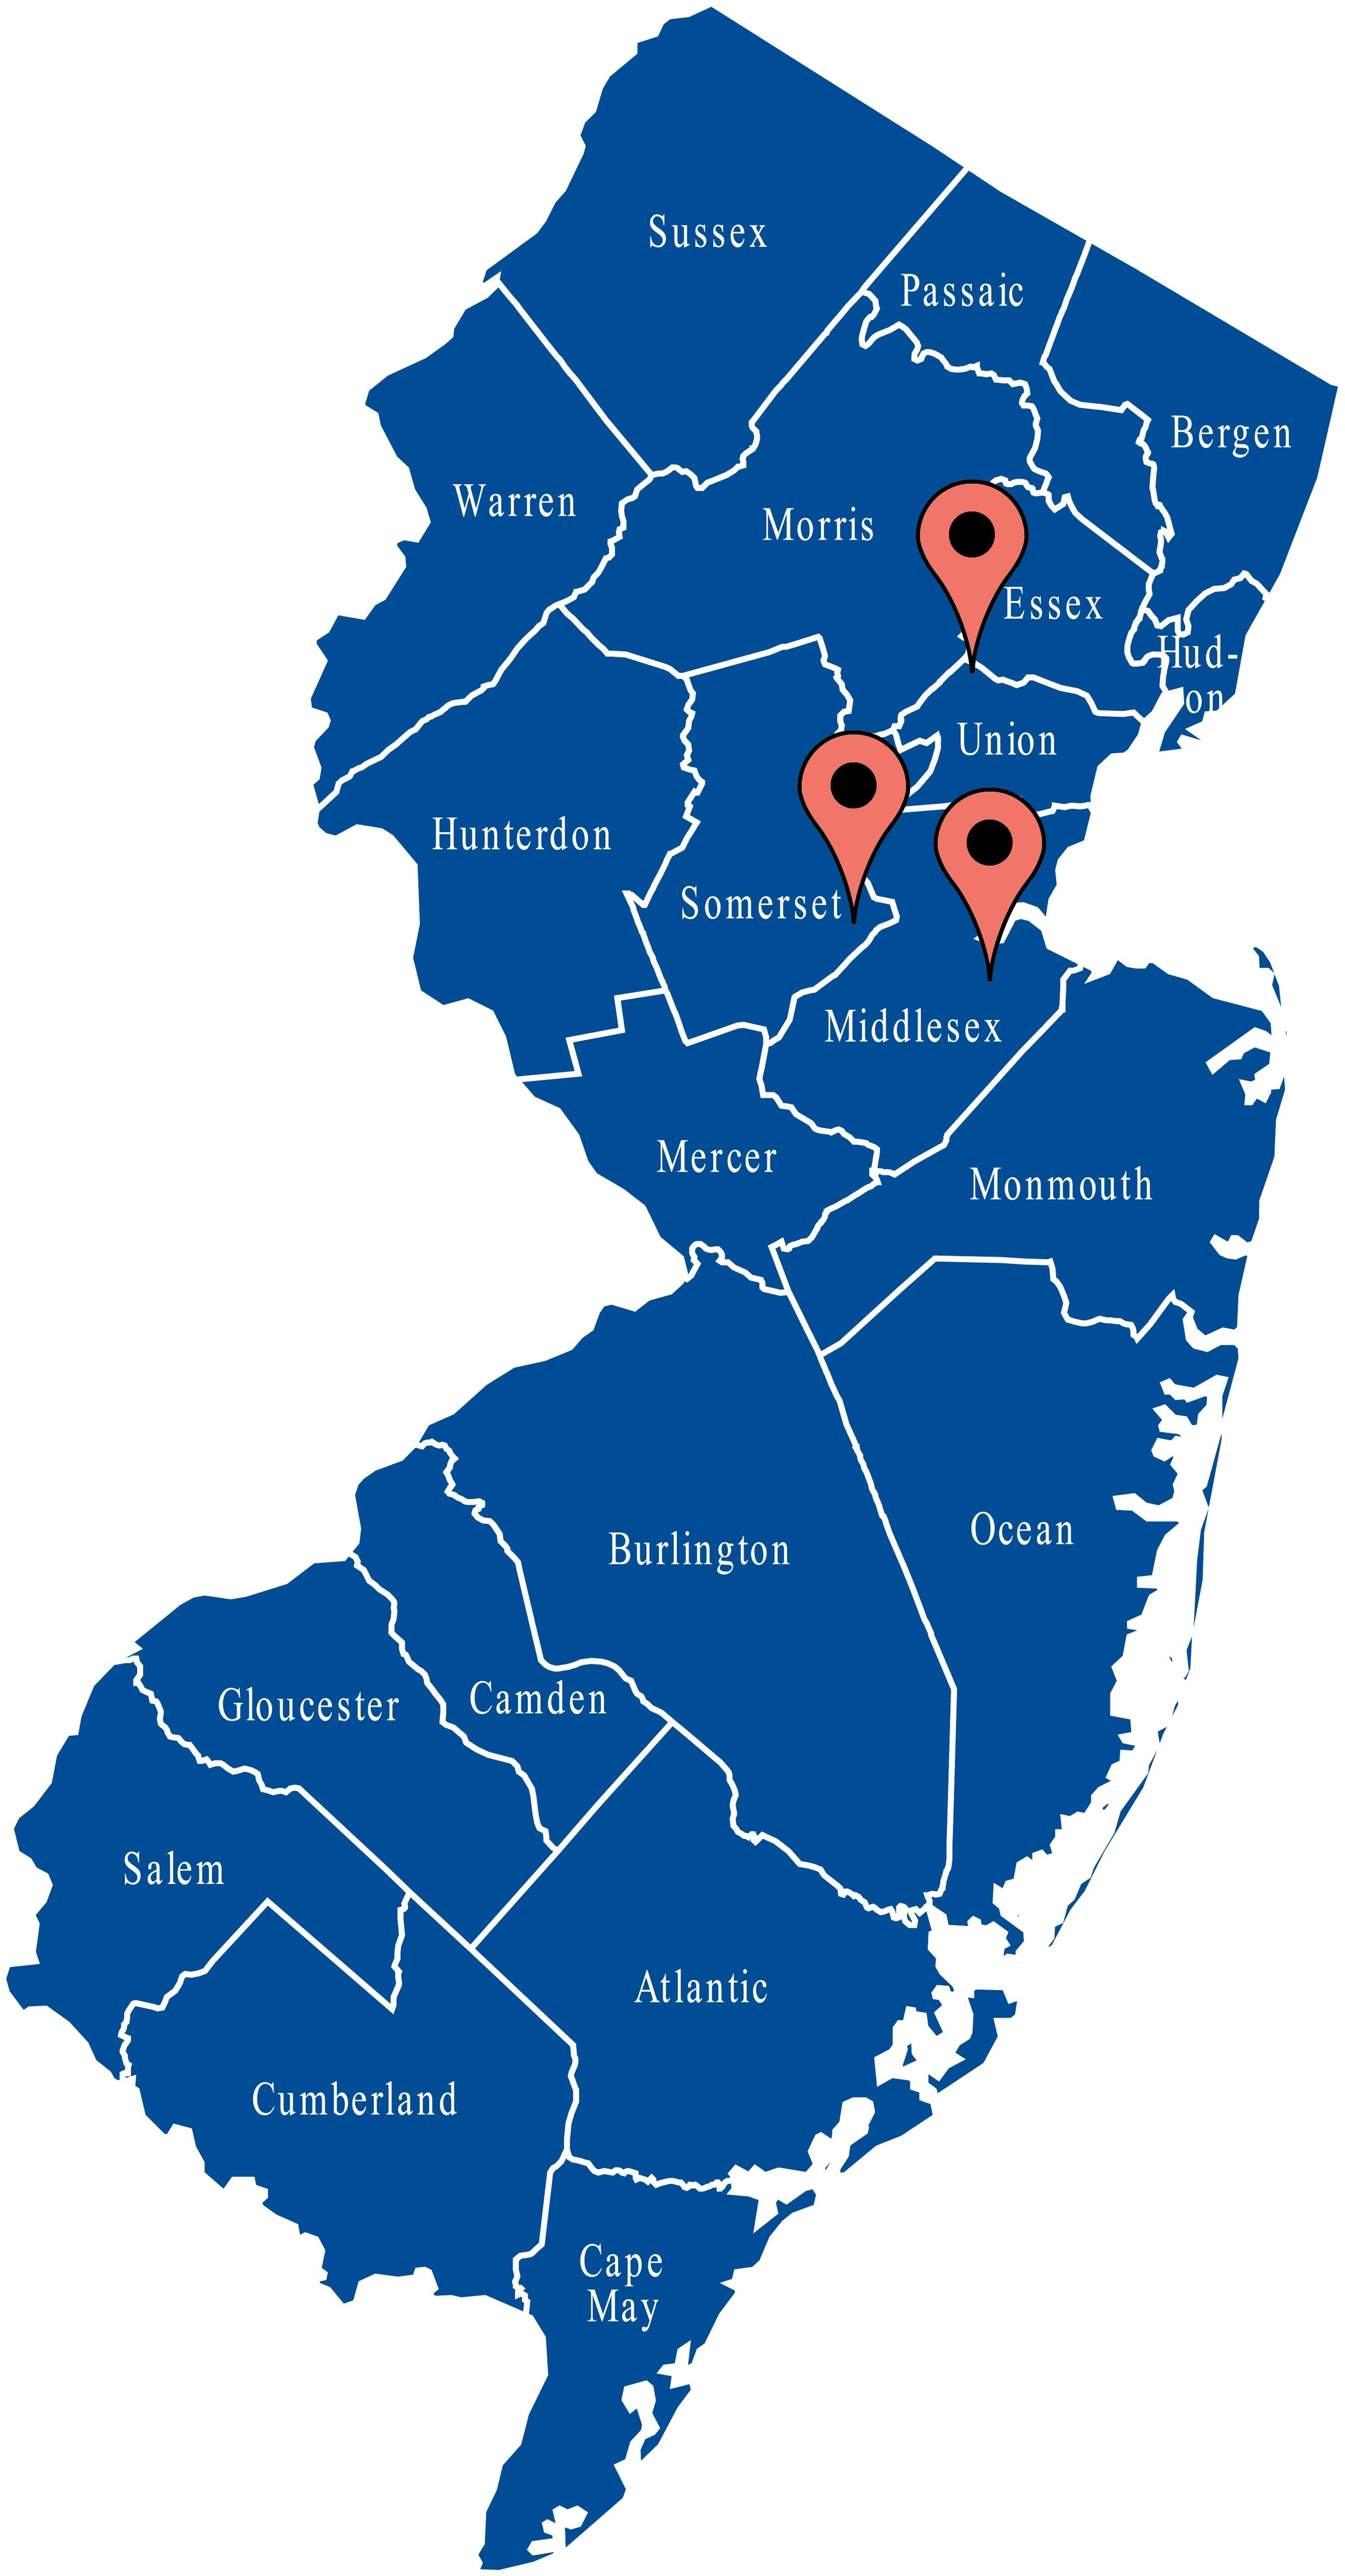 Map of New Jersey - Lou Porchetta Paving - Concrete, Paver, Belgium Block Contractor providing service in Bergen County NJ, Essex County NJ, Middlesex County NJ, Monmouth County NJ, Hudson County NJ, Ocean County NJ, Union County NJ, Camden County NJ, Passaic County NJ, Morris County NJ, Burlington County NJ, Mercer County NJ, Somerset County NJ, Gloucester County NJ, Atlantic County NJ, Sussex County NJ, Cumberland County NJ, Hunterdon County NJ, Warren County NJ, Cape May County NJ, Salem County NJ